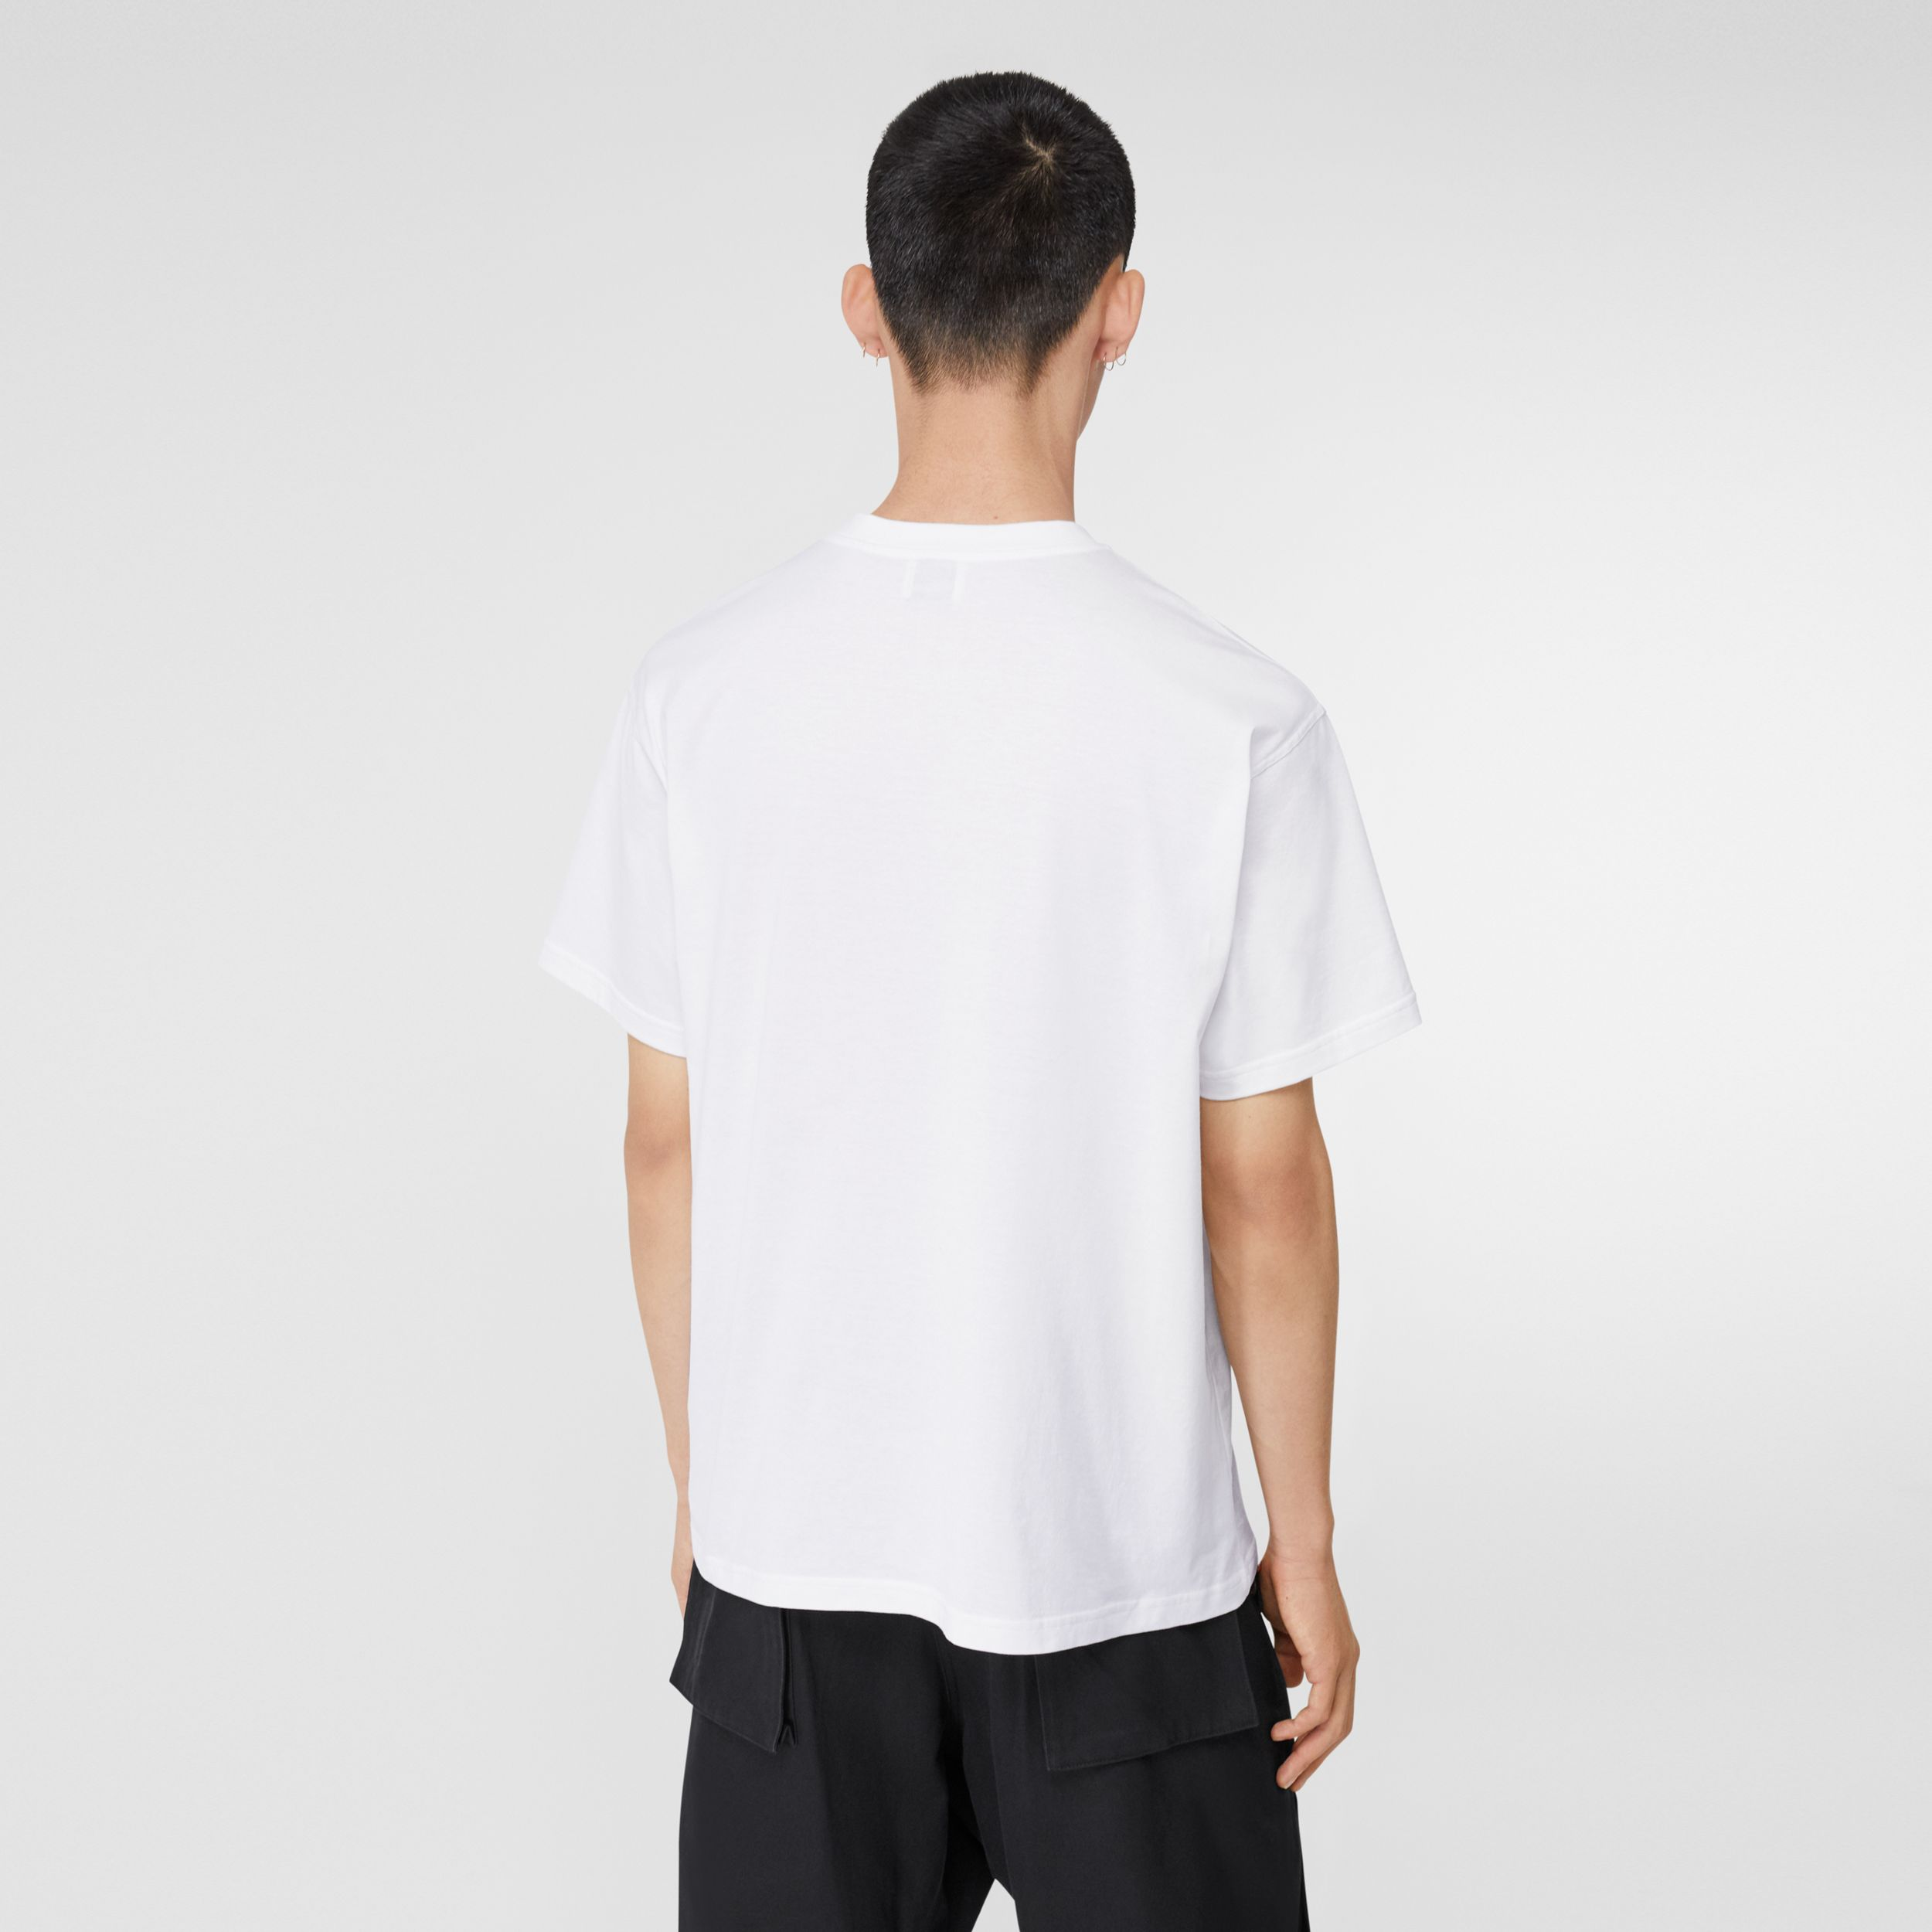 Monogram Motif Cotton Oversized T-shirt in White - Men | Burberry United Kingdom - 3